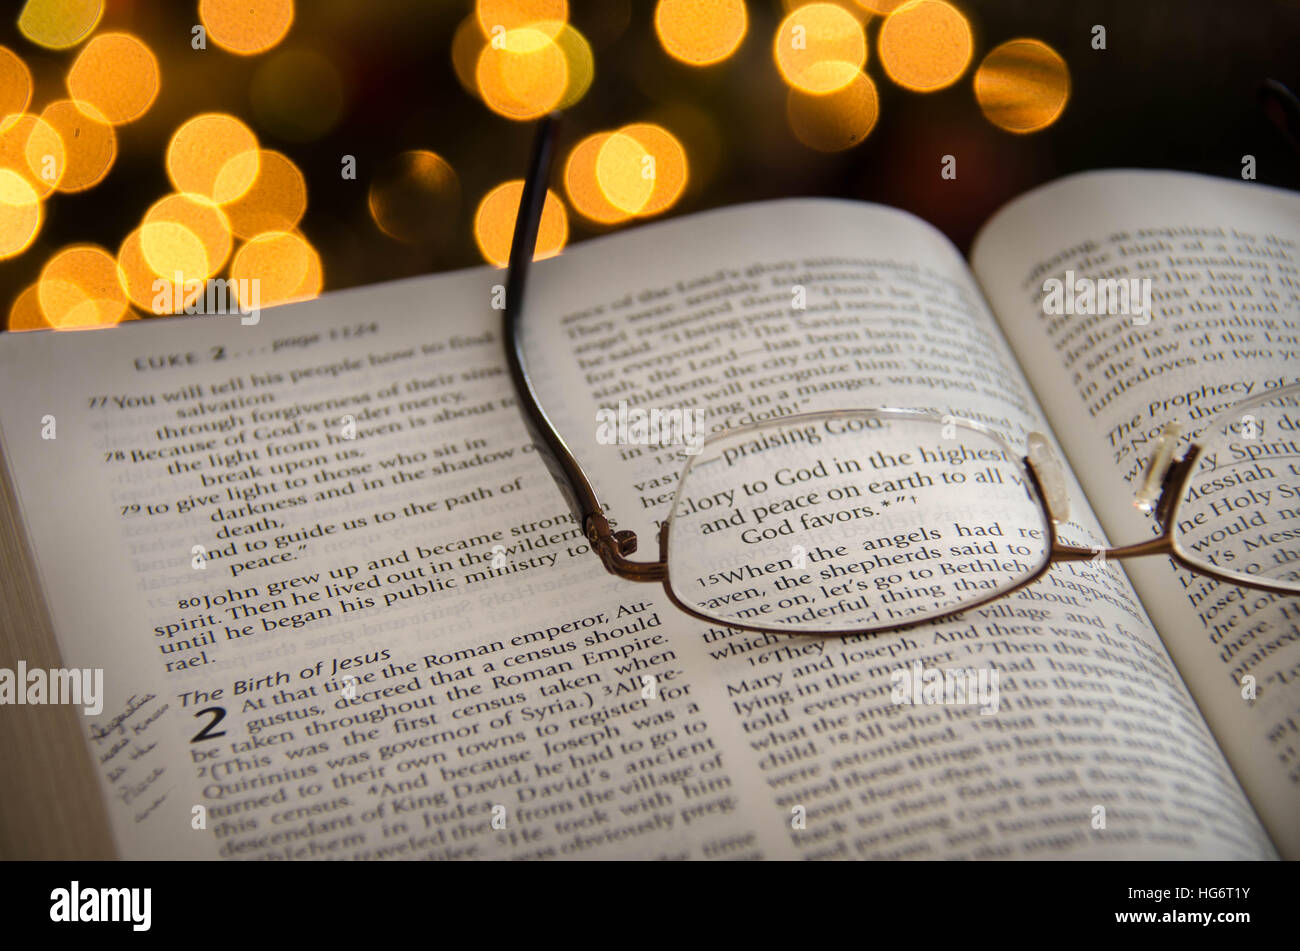 The Christmas Story Bible.An Open Bible With Highlighted Verse On The Christmas Story